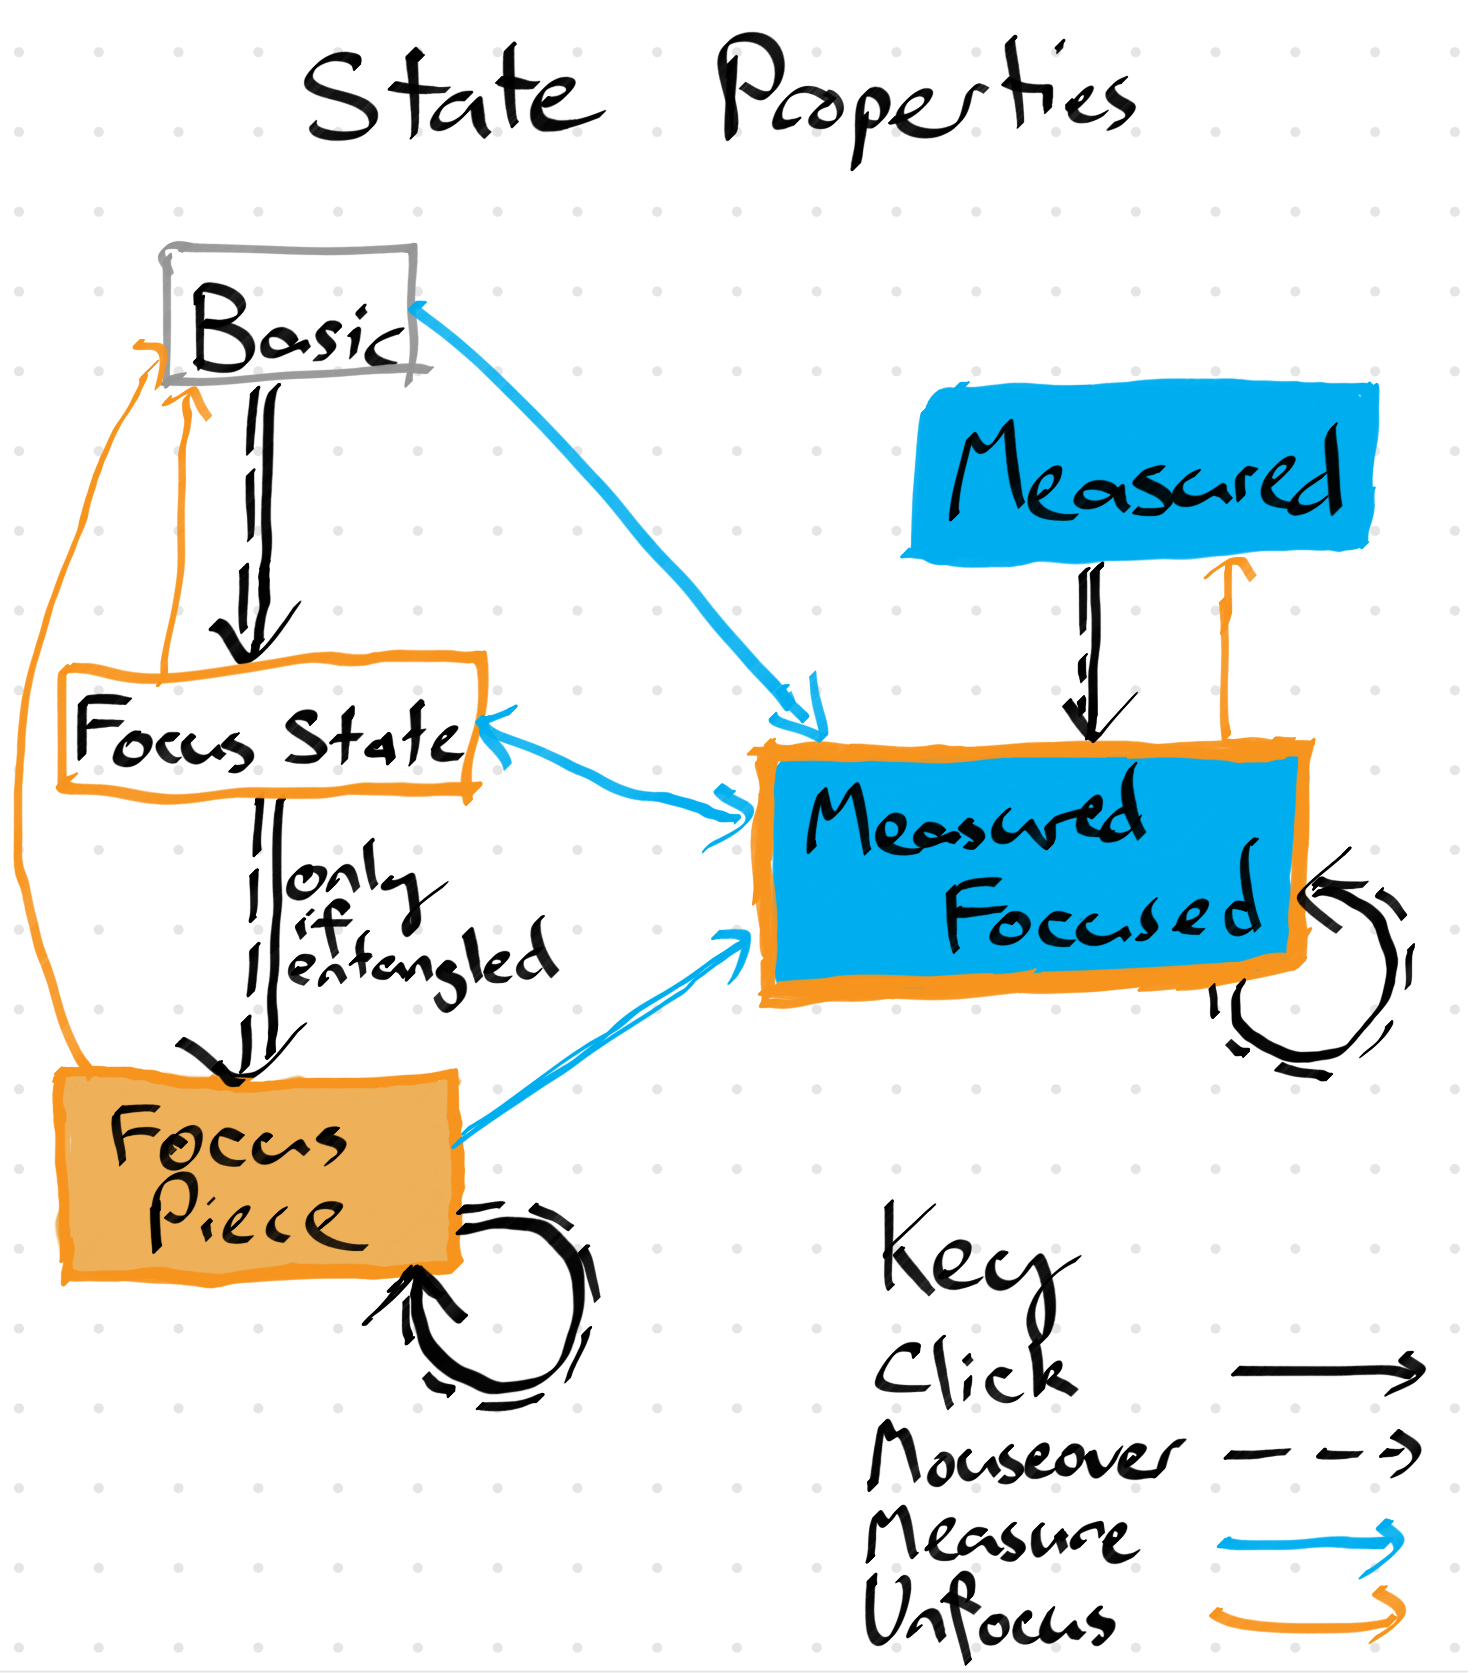 A state representation state diagram. Mouse overs in this approach become 'previews' of a new state (in the case of measurements, it actually changes the measurement on mouseover but will then revert if you don't click on it).